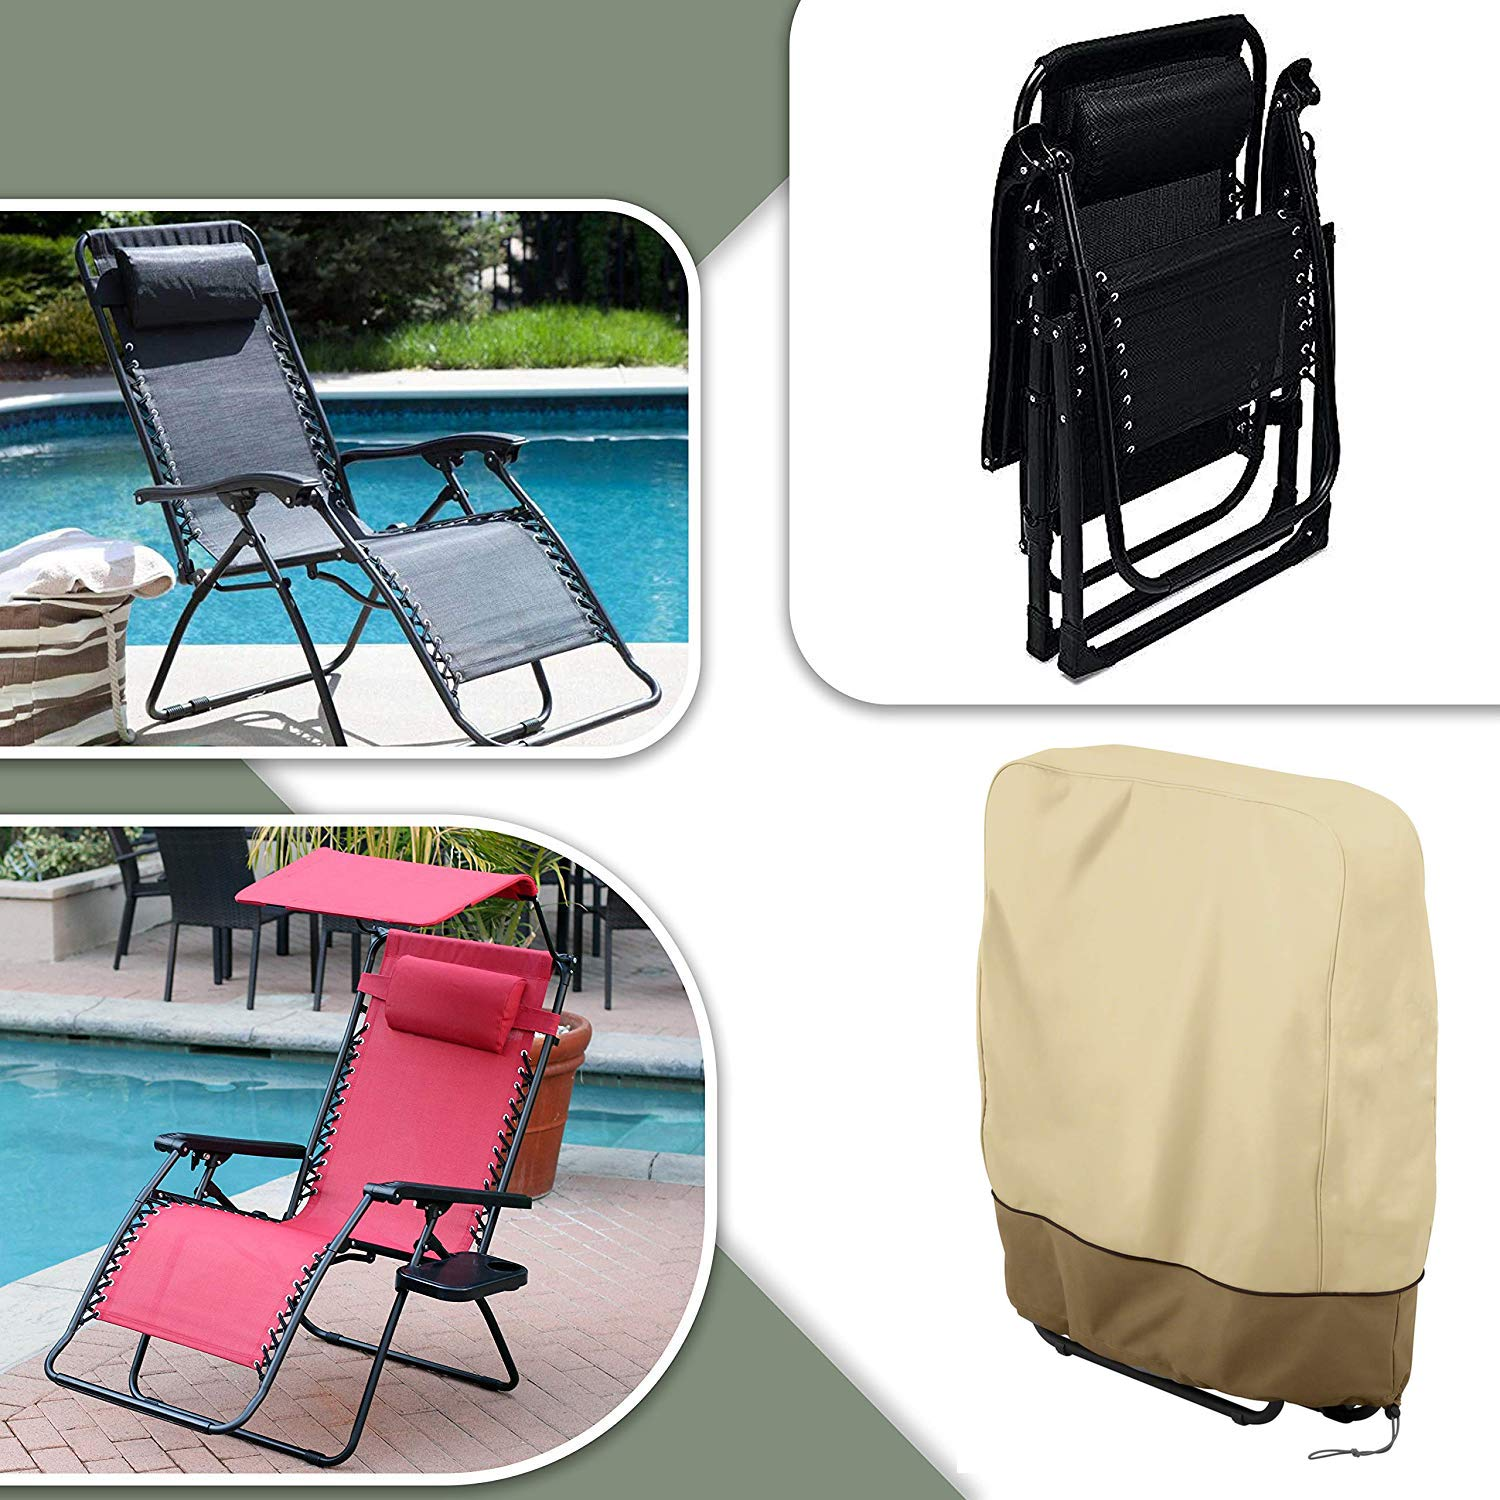 32.3 x 36.6 Holoras Outdoor Zero Gravity Folding Chair Cover Waterproof and UV Resistant